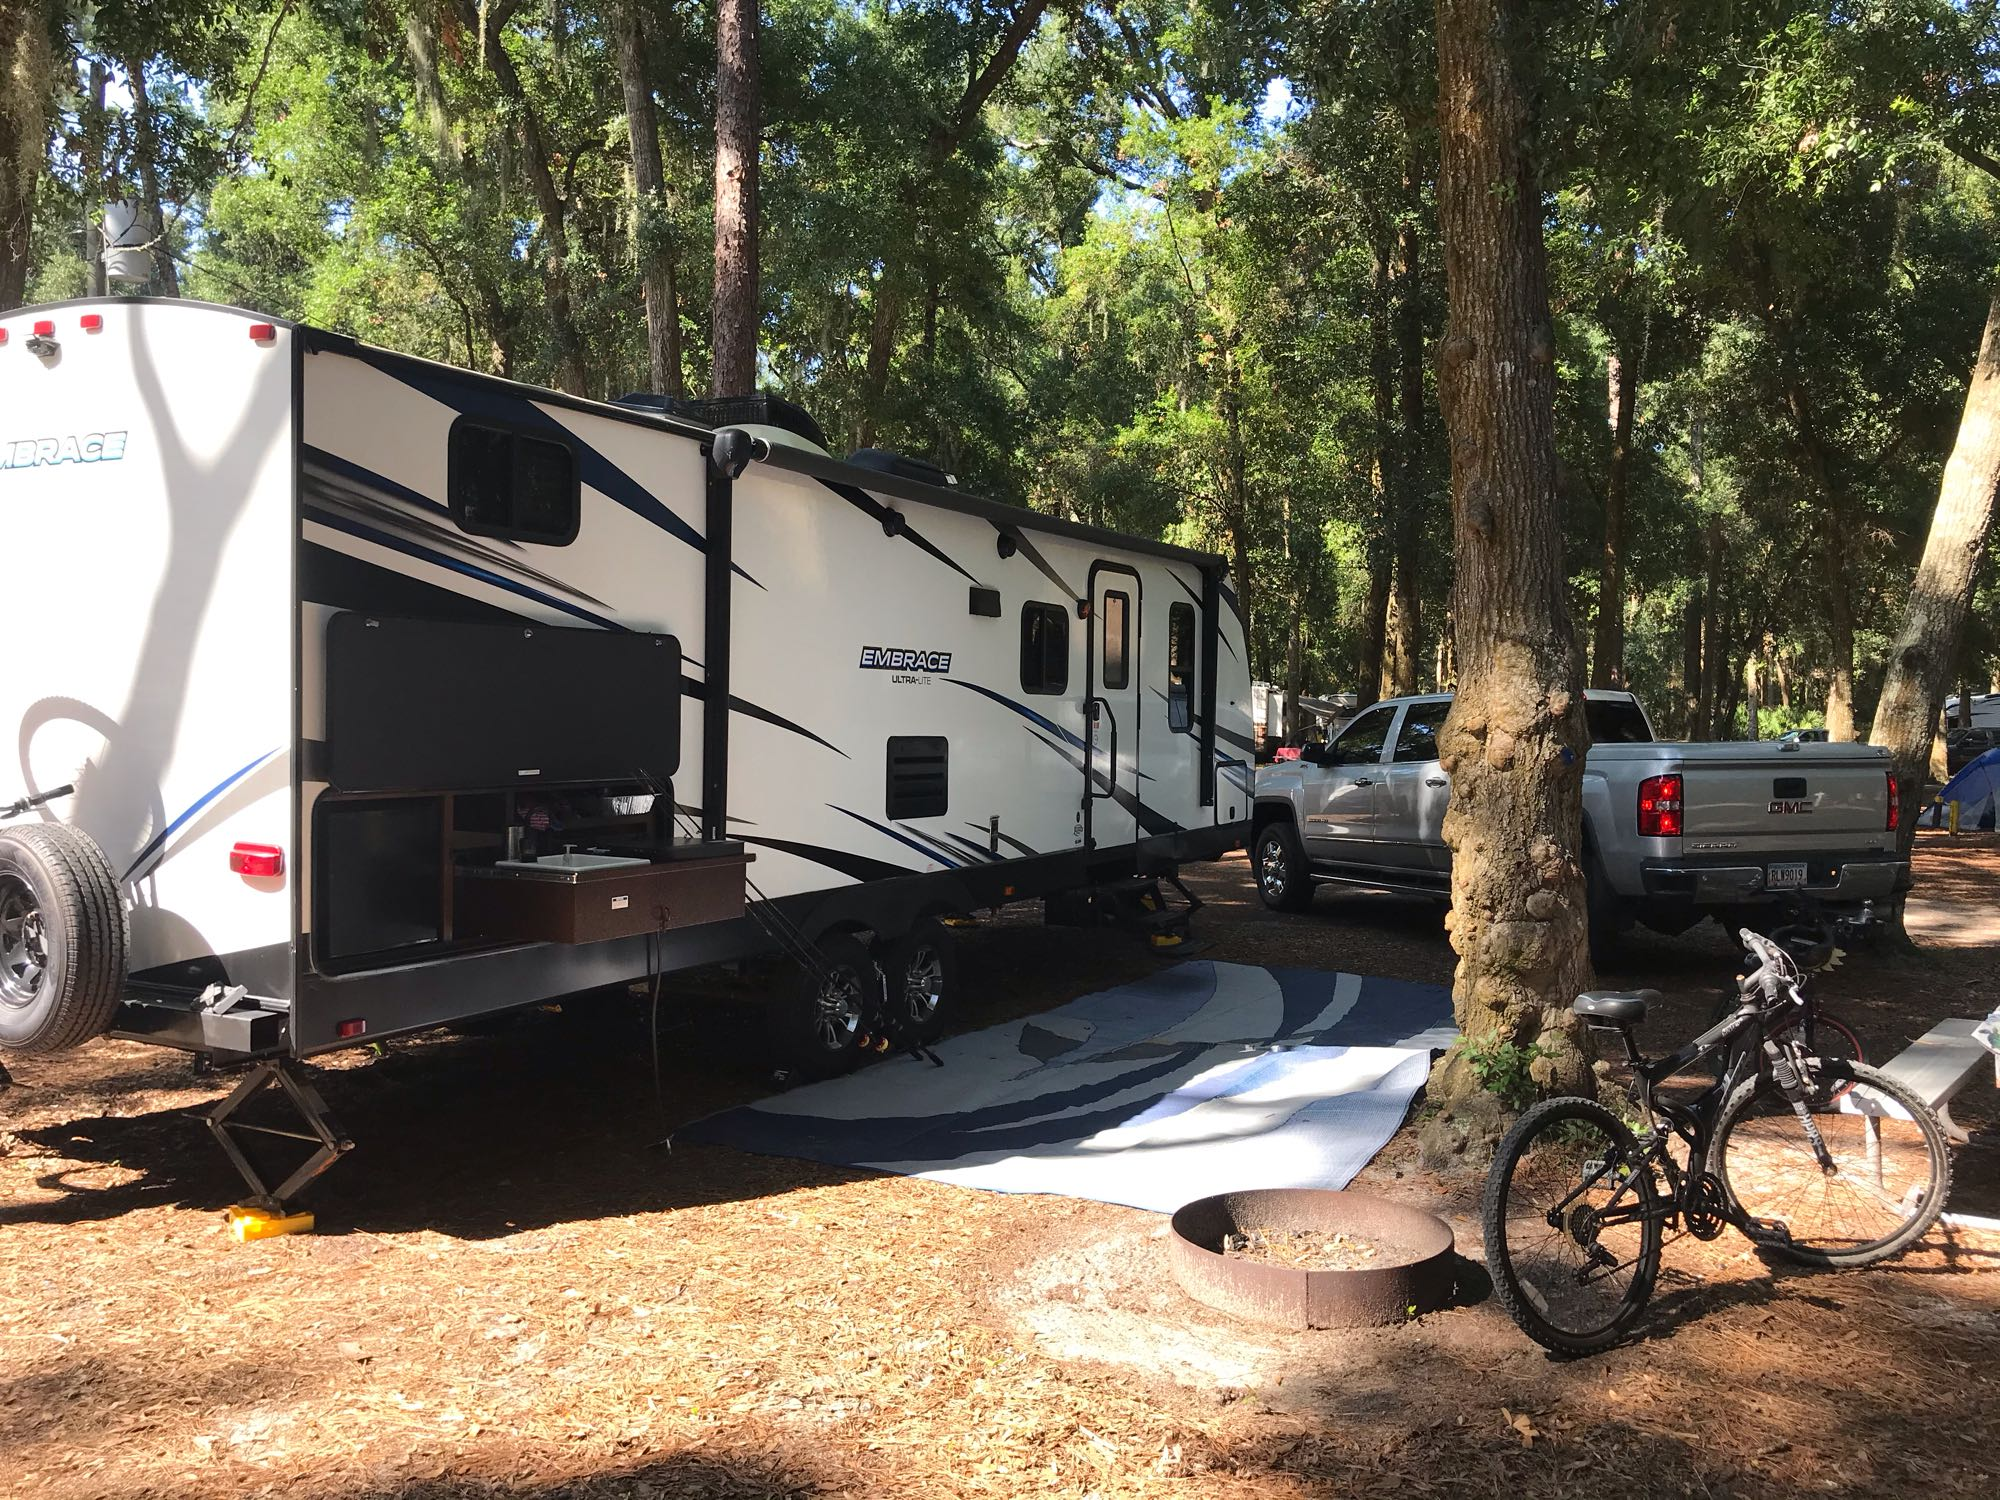 Jekyll Island campground is nestled in beautiful trees and large sites. . CruiserRvCorp Embrace EL280 2018